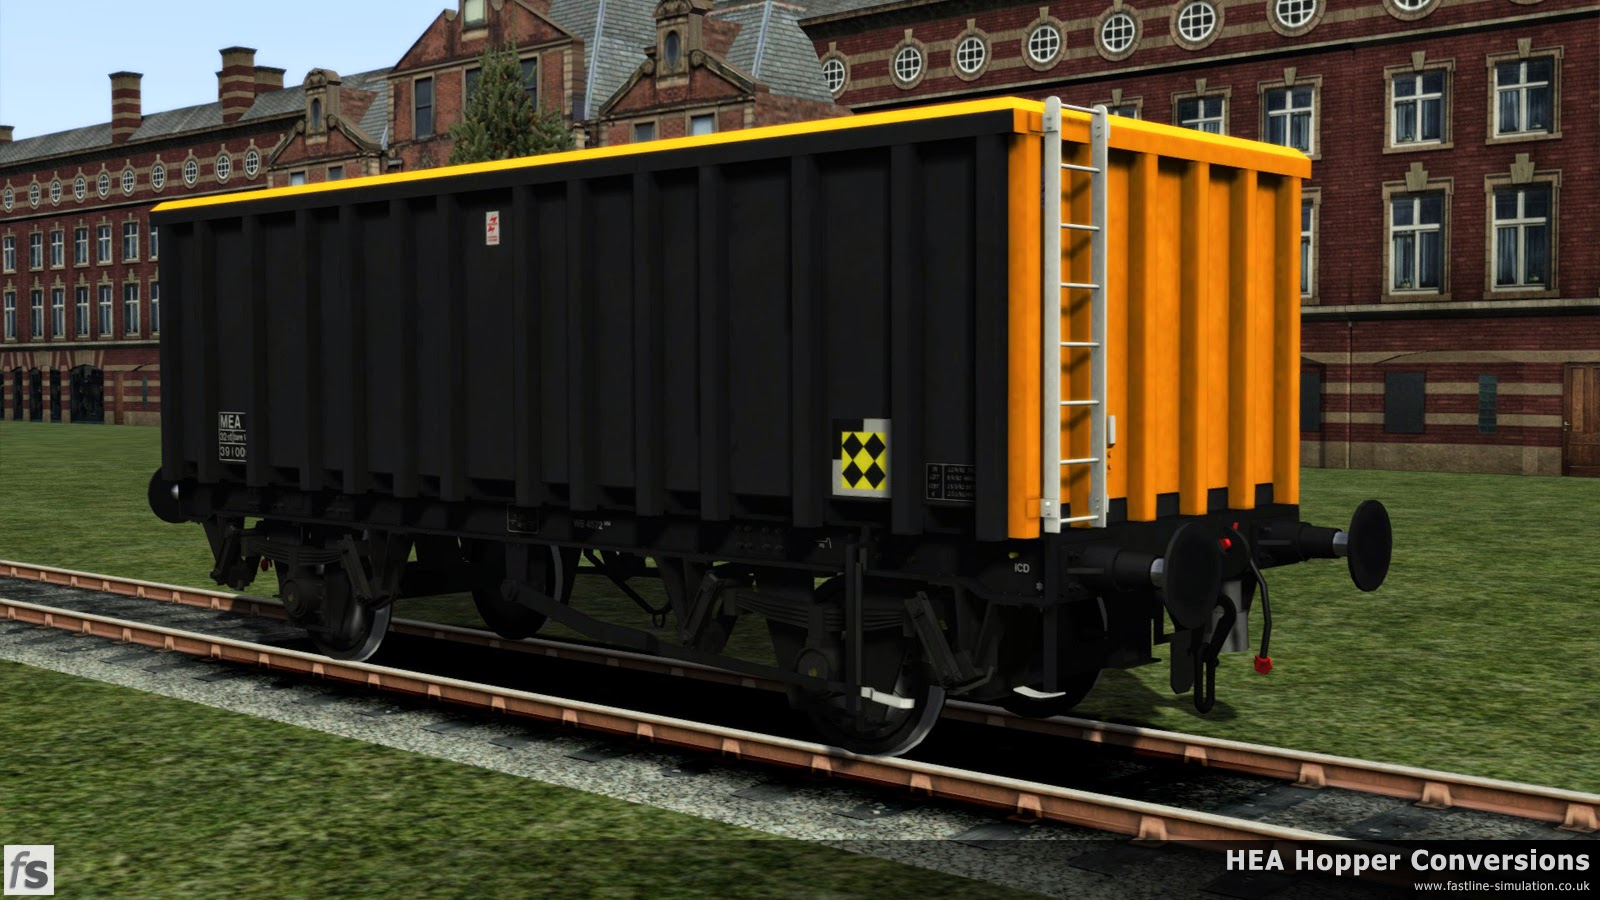 Fastline Simulation - HEA Conversions: The first of the MEA conversions in Railfreight Sector livery complete with Trainload Coal branding poses for the official photographer on the works lawn.